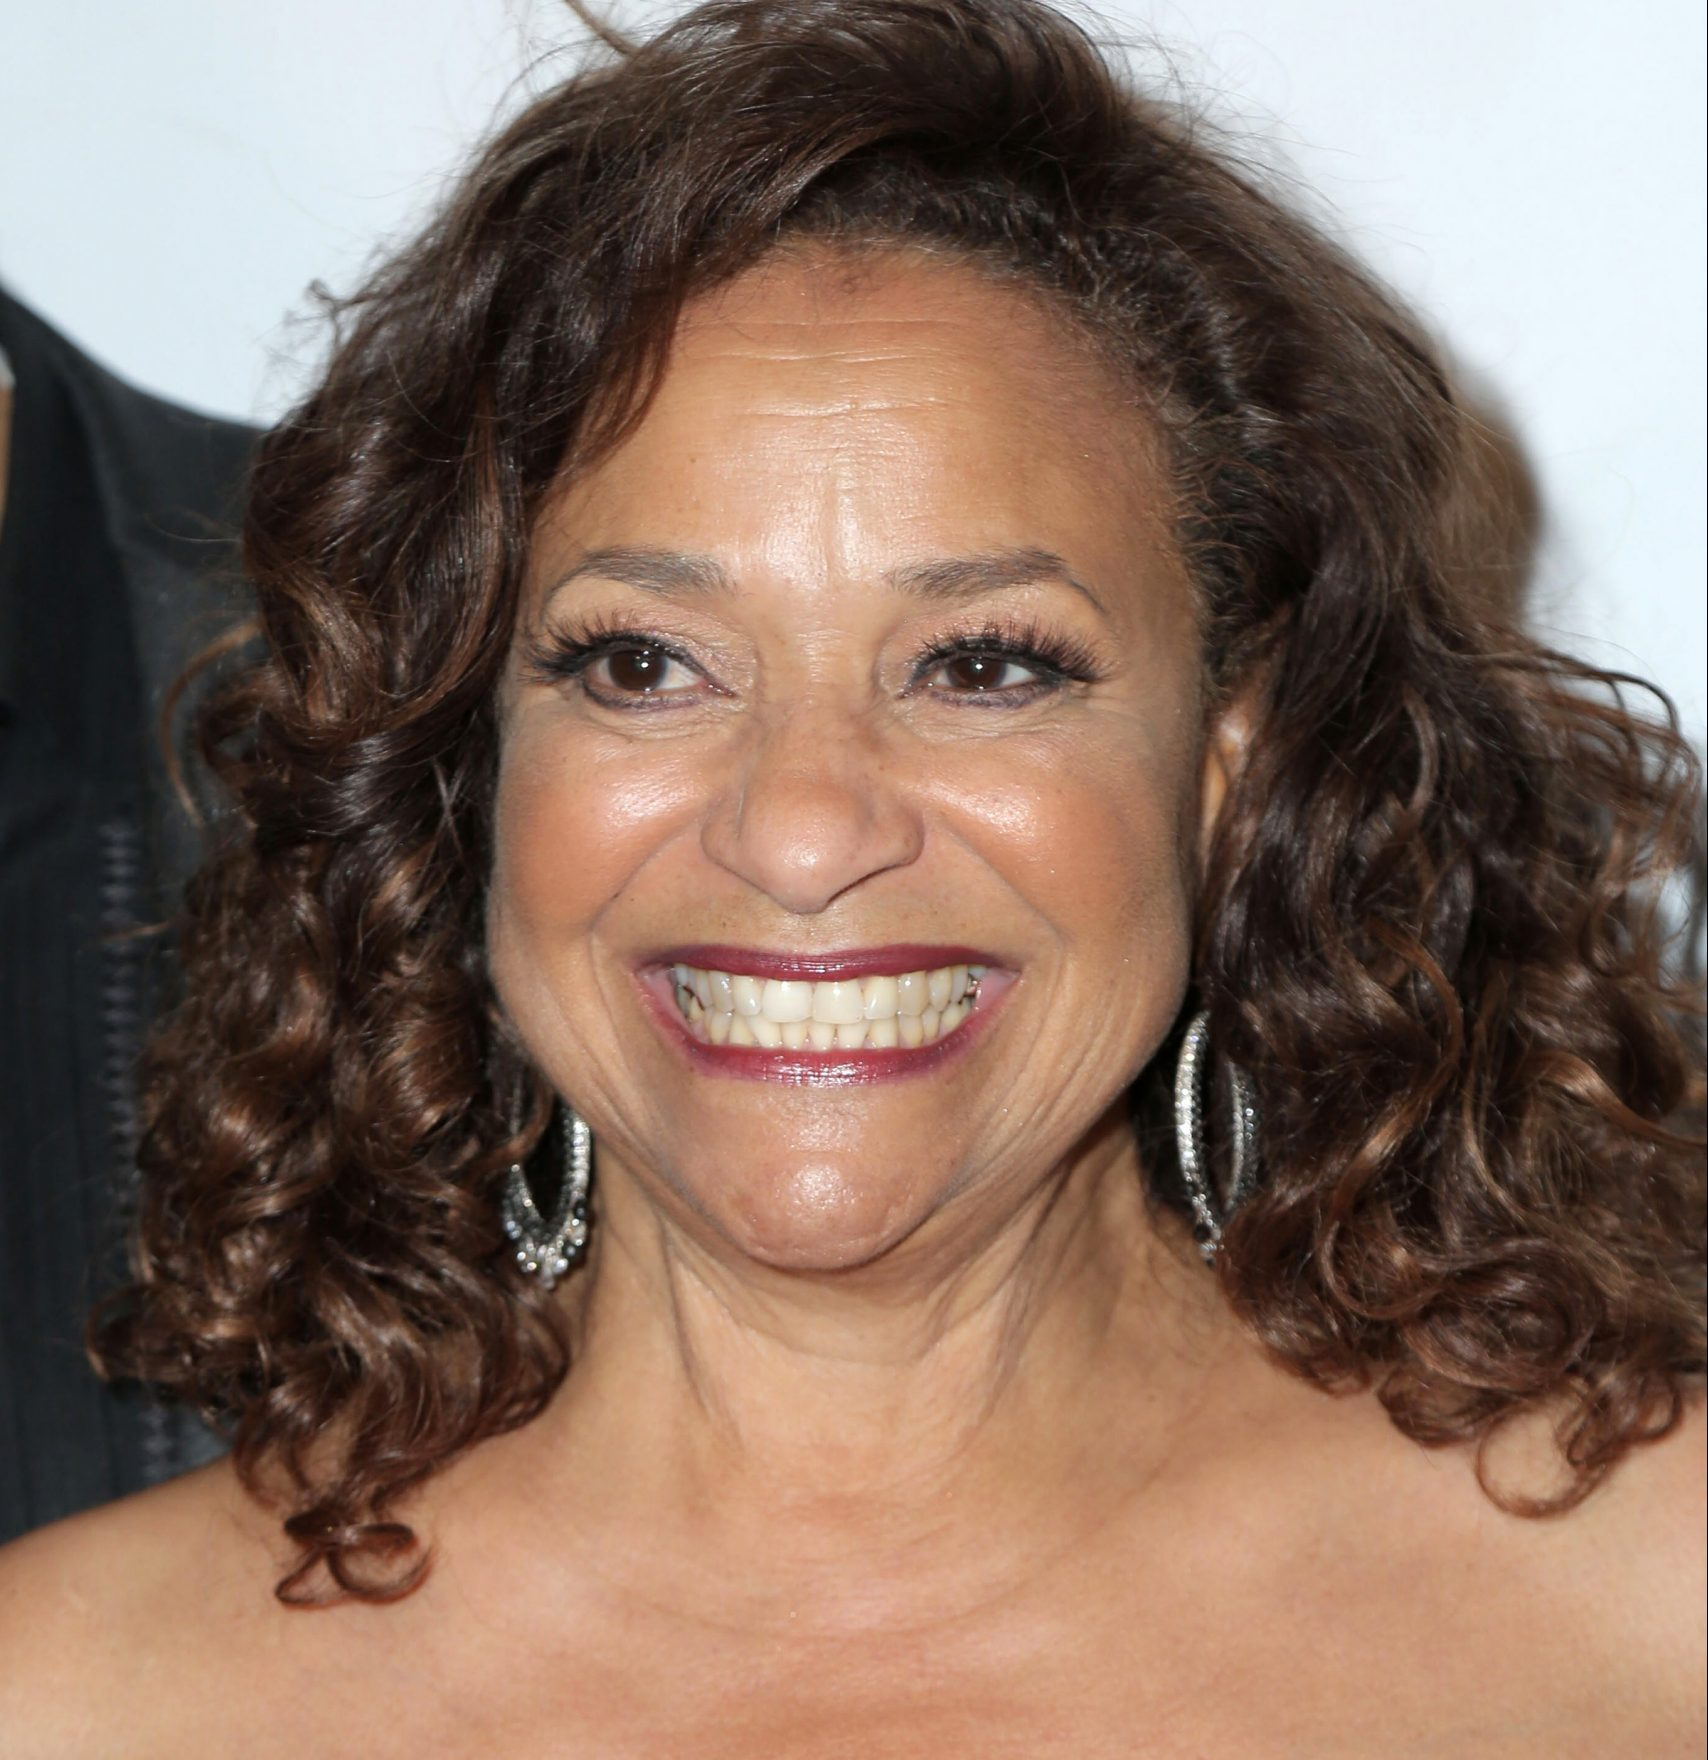 Debbie Allen smiles at a red carpet event. She is a beautiful Black woman with curly brown hair that sits on her shoulders.